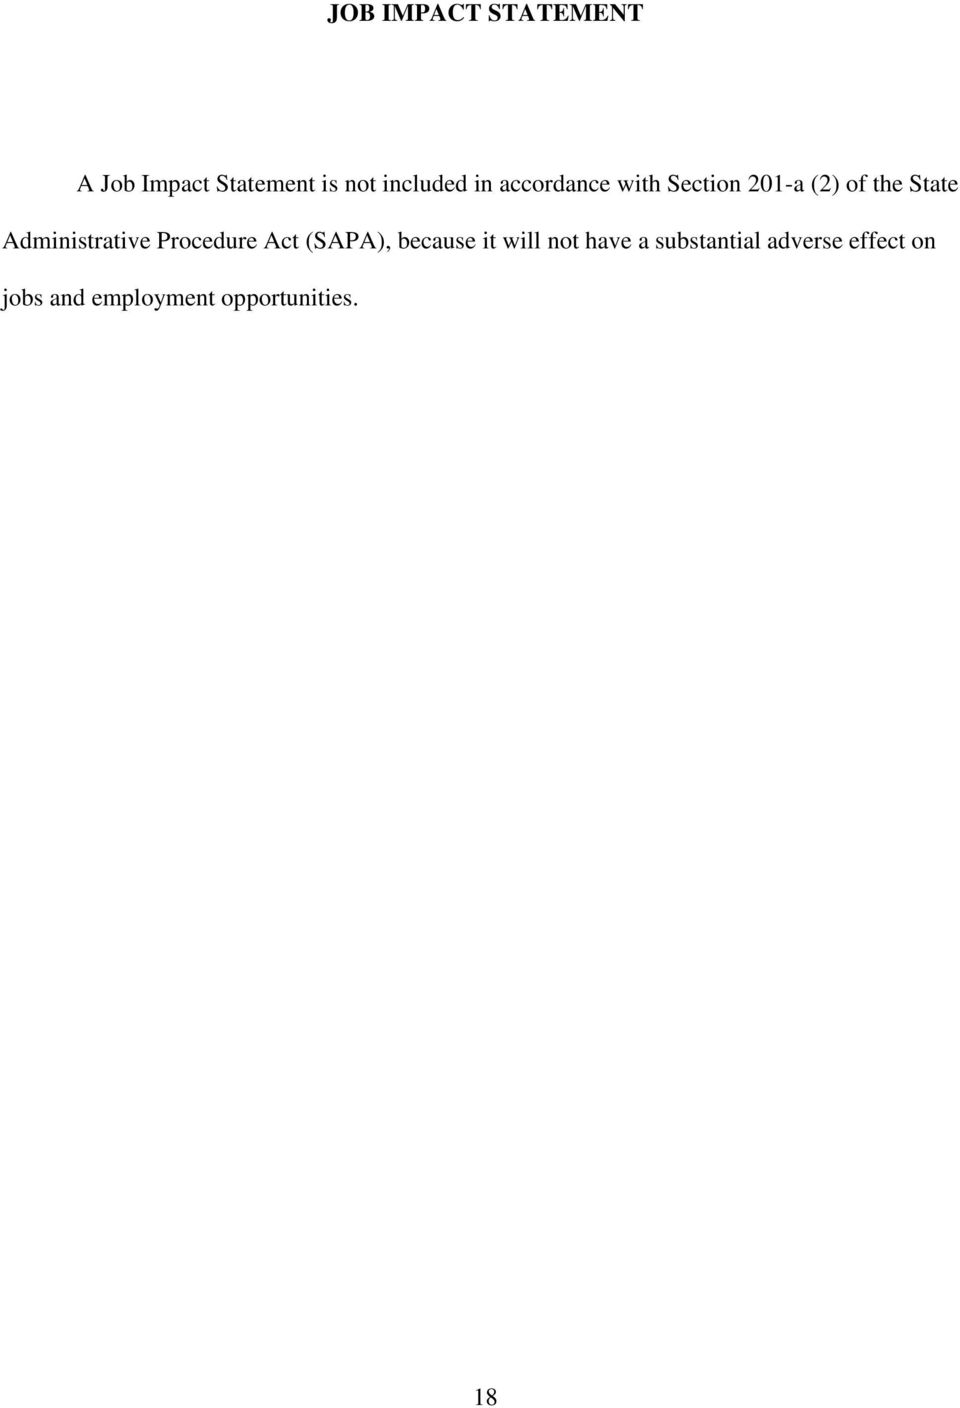 Administrative Procedure Act (SAPA), because it will not